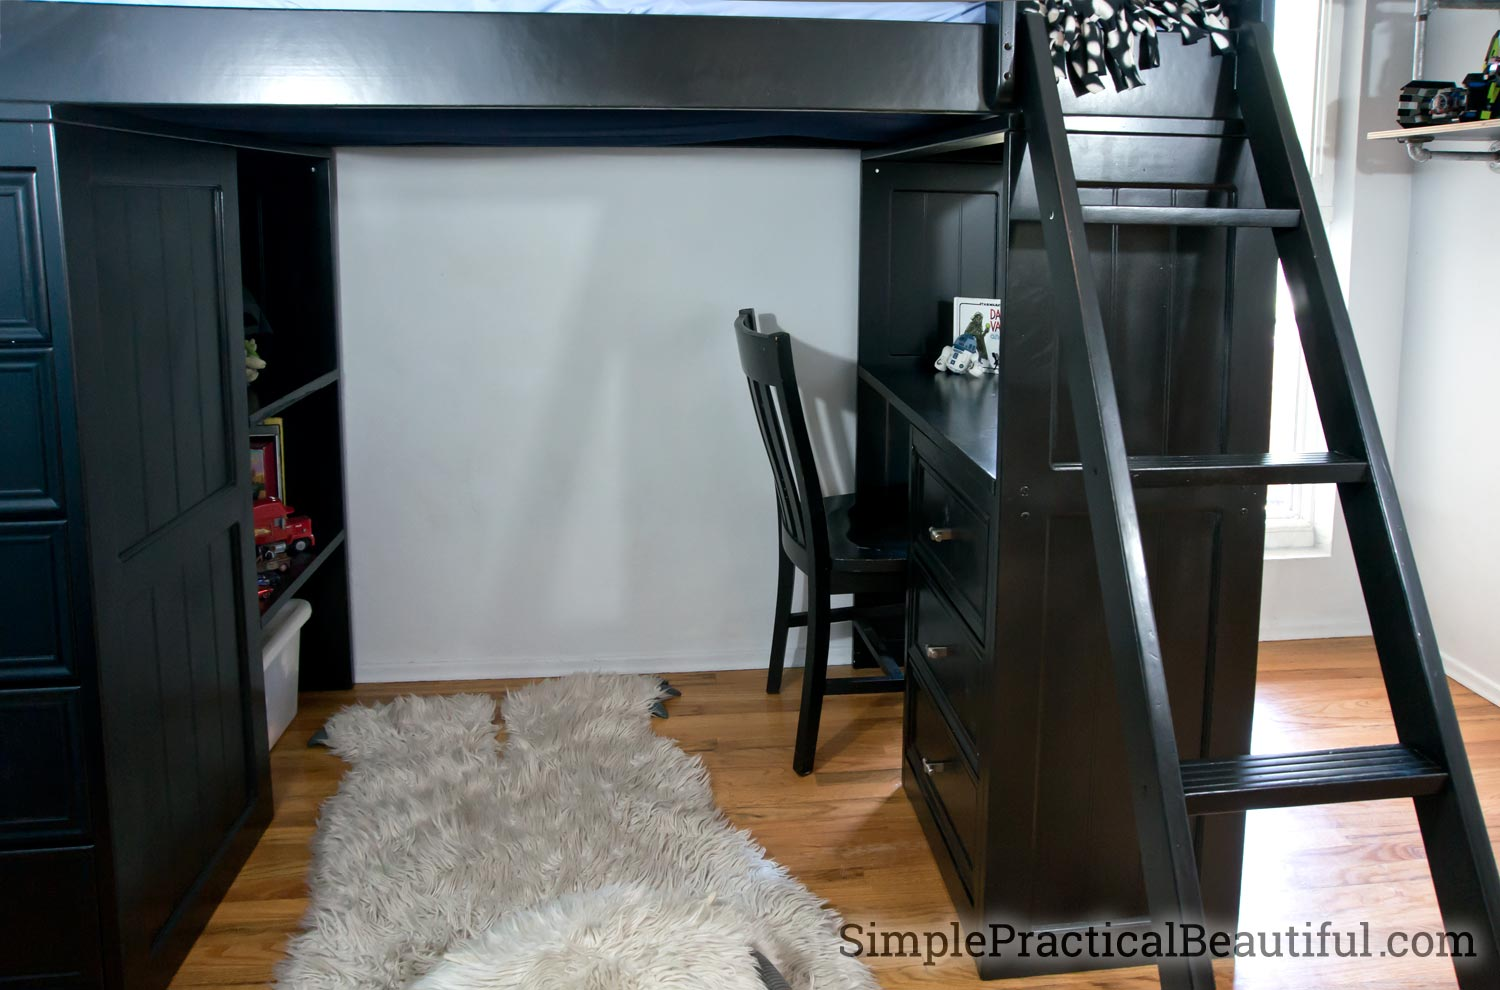 A loft bed with a desk area refinished in black with extra lighting added